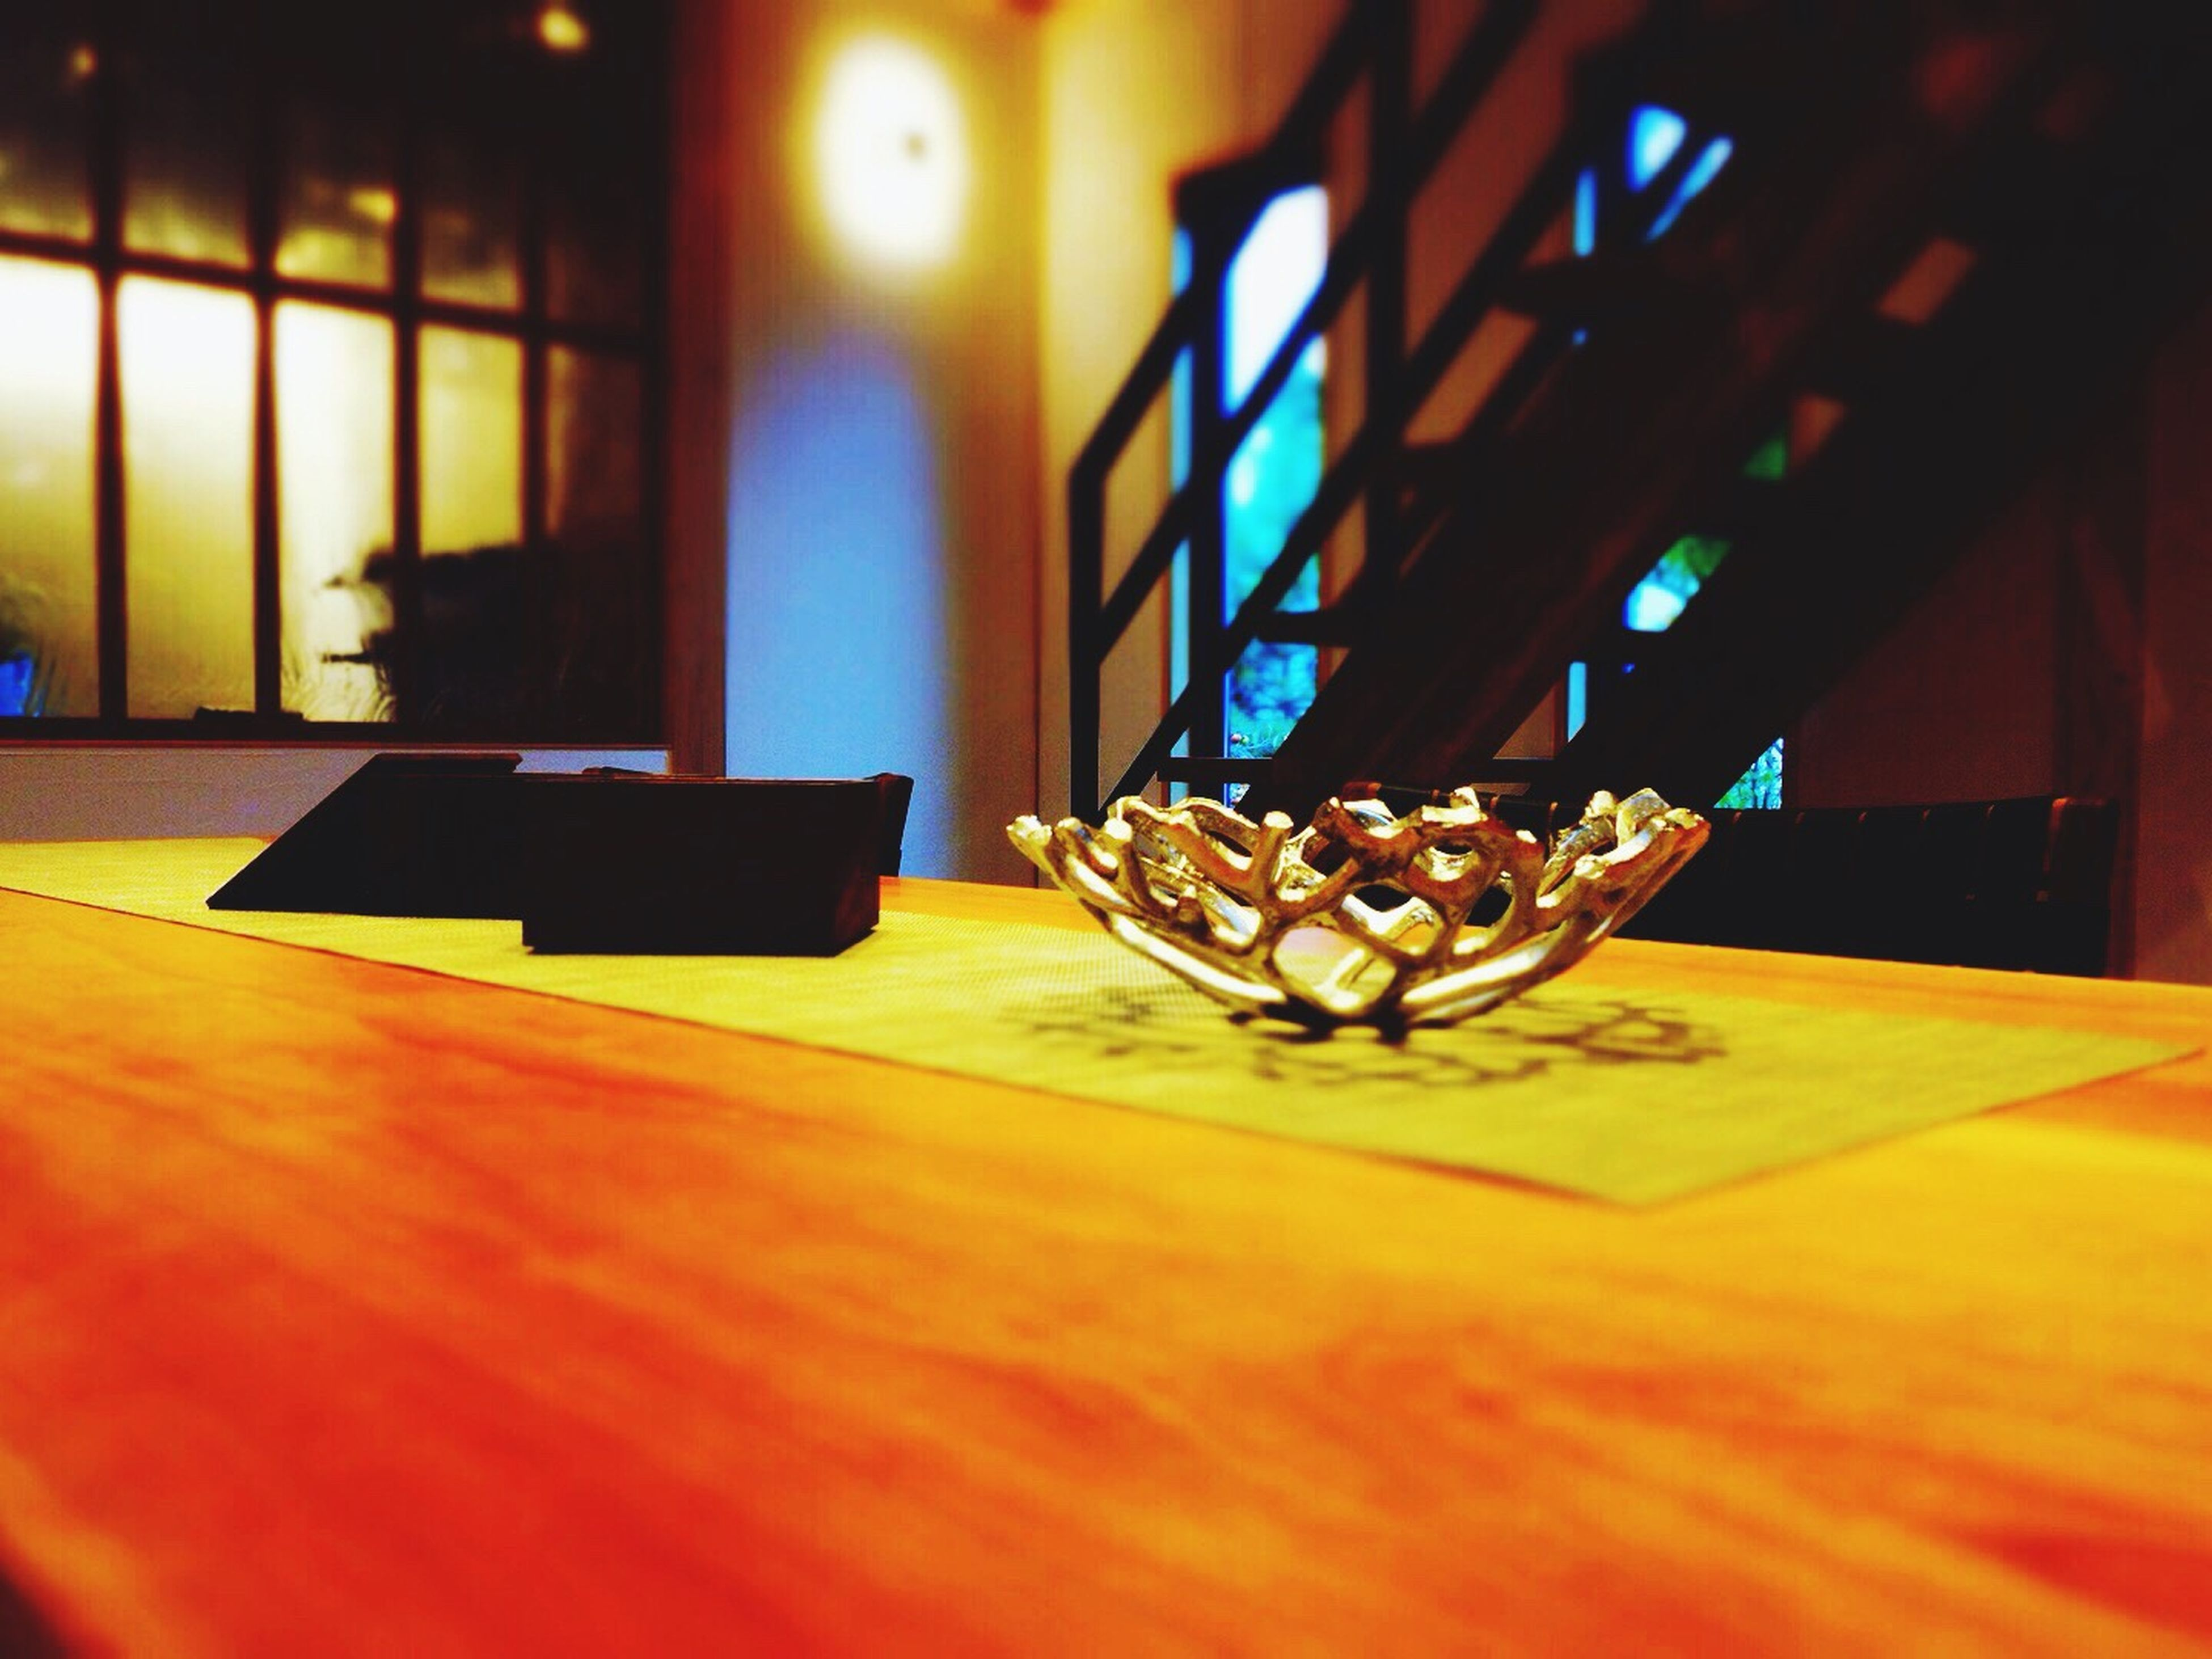 indoors, table, home interior, wood - material, still life, close-up, no people, focus on foreground, flooring, window, absence, sunlight, shadow, selective focus, hanging, empty, glass - material, hardwood floor, wooden, lighting equipment